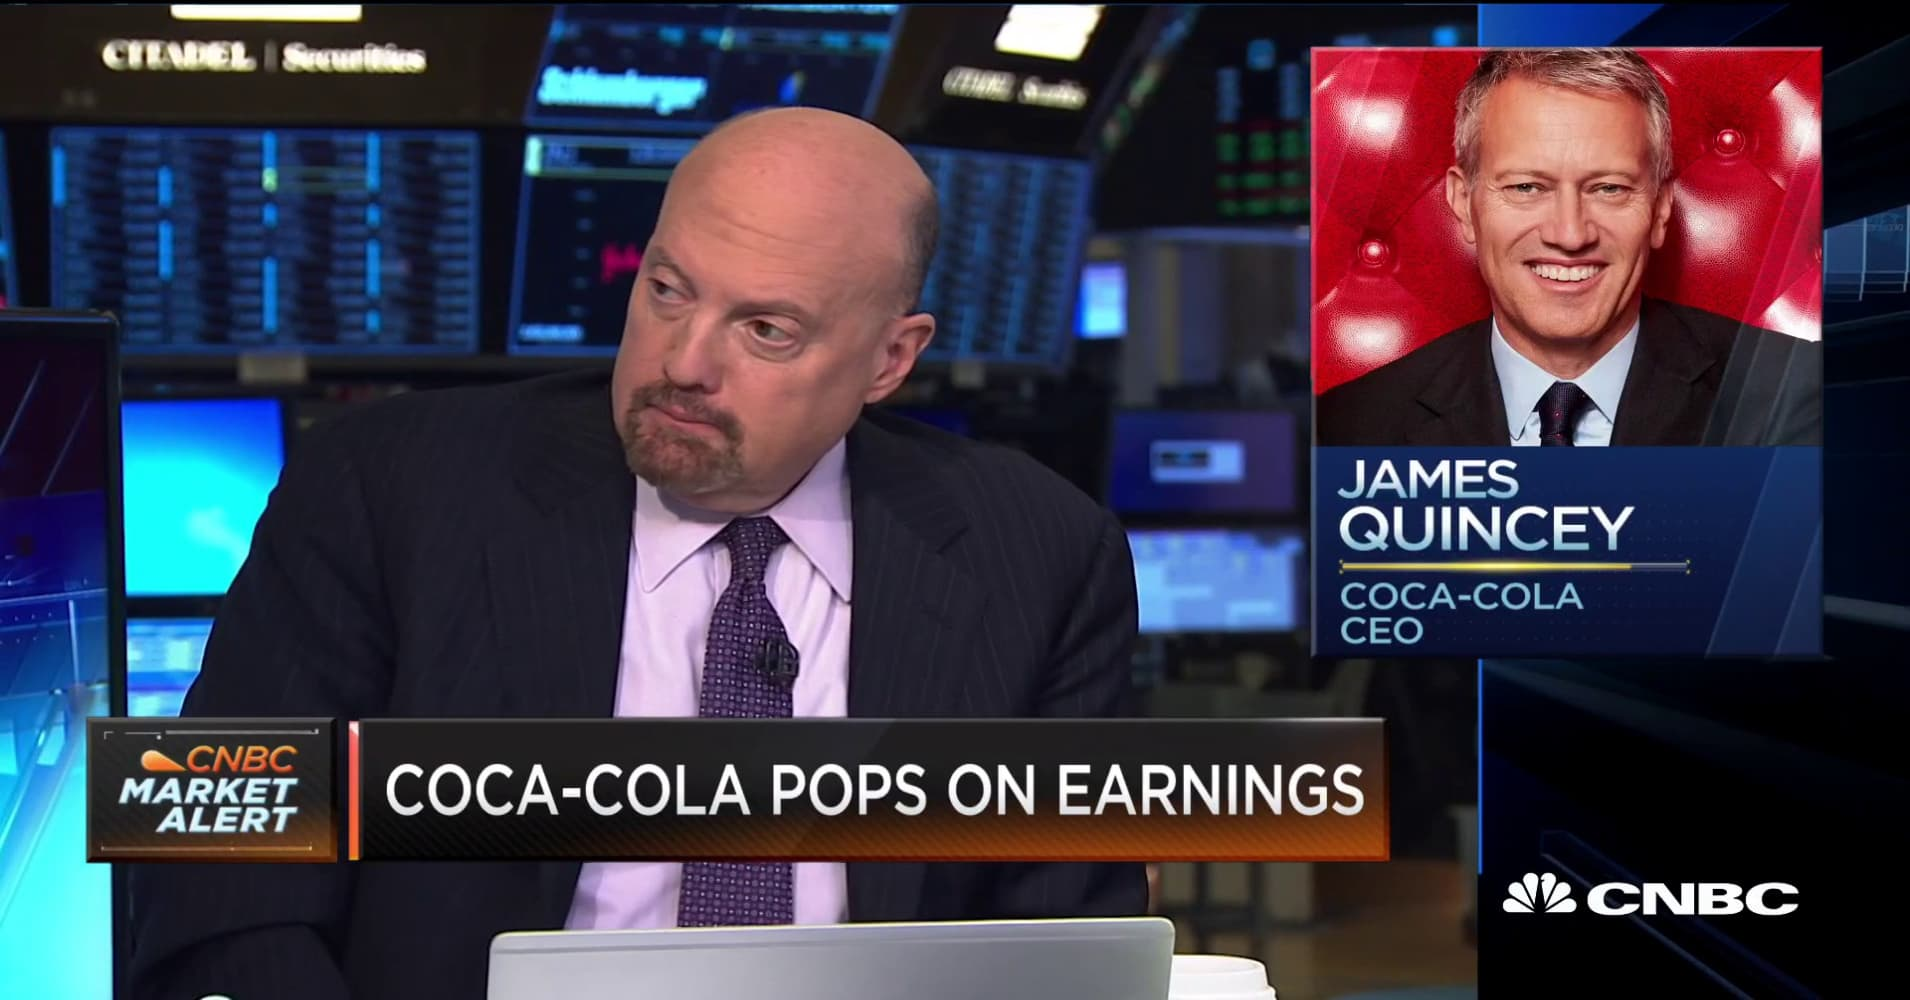 Cramer: Coca-Cola's stock should be higher